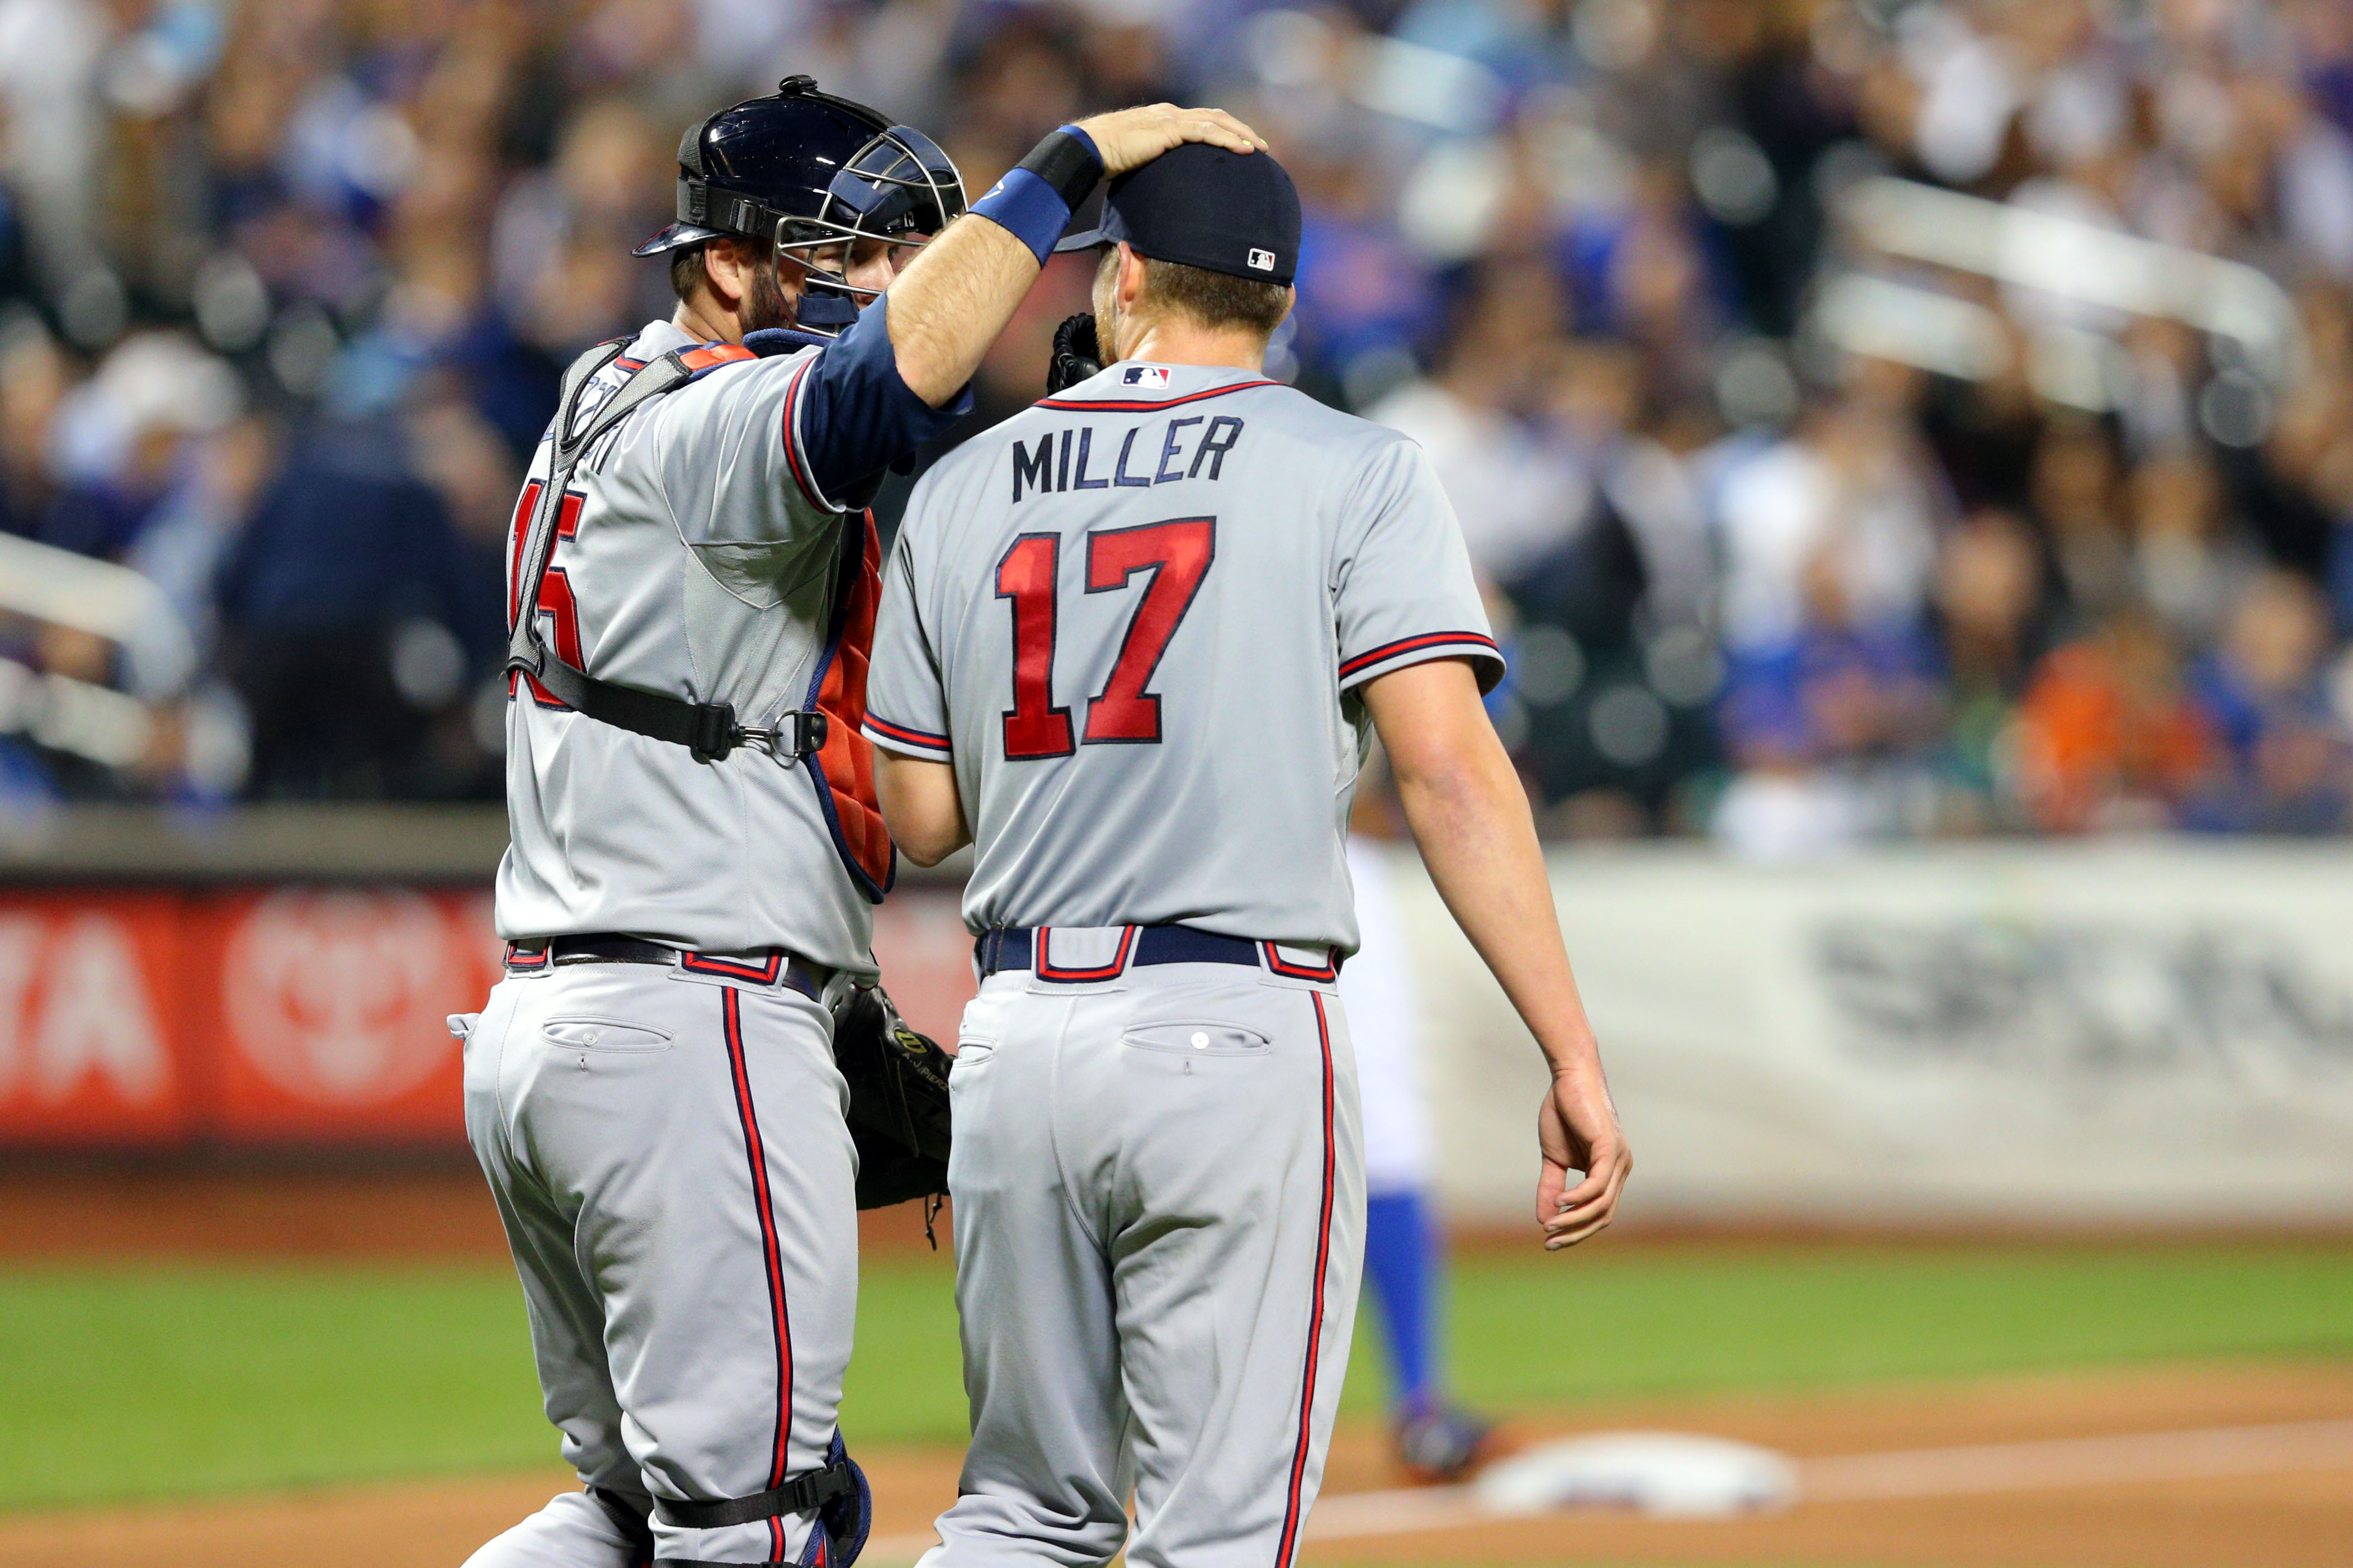 Let's hope MIller gets some more run support than the Braves game him